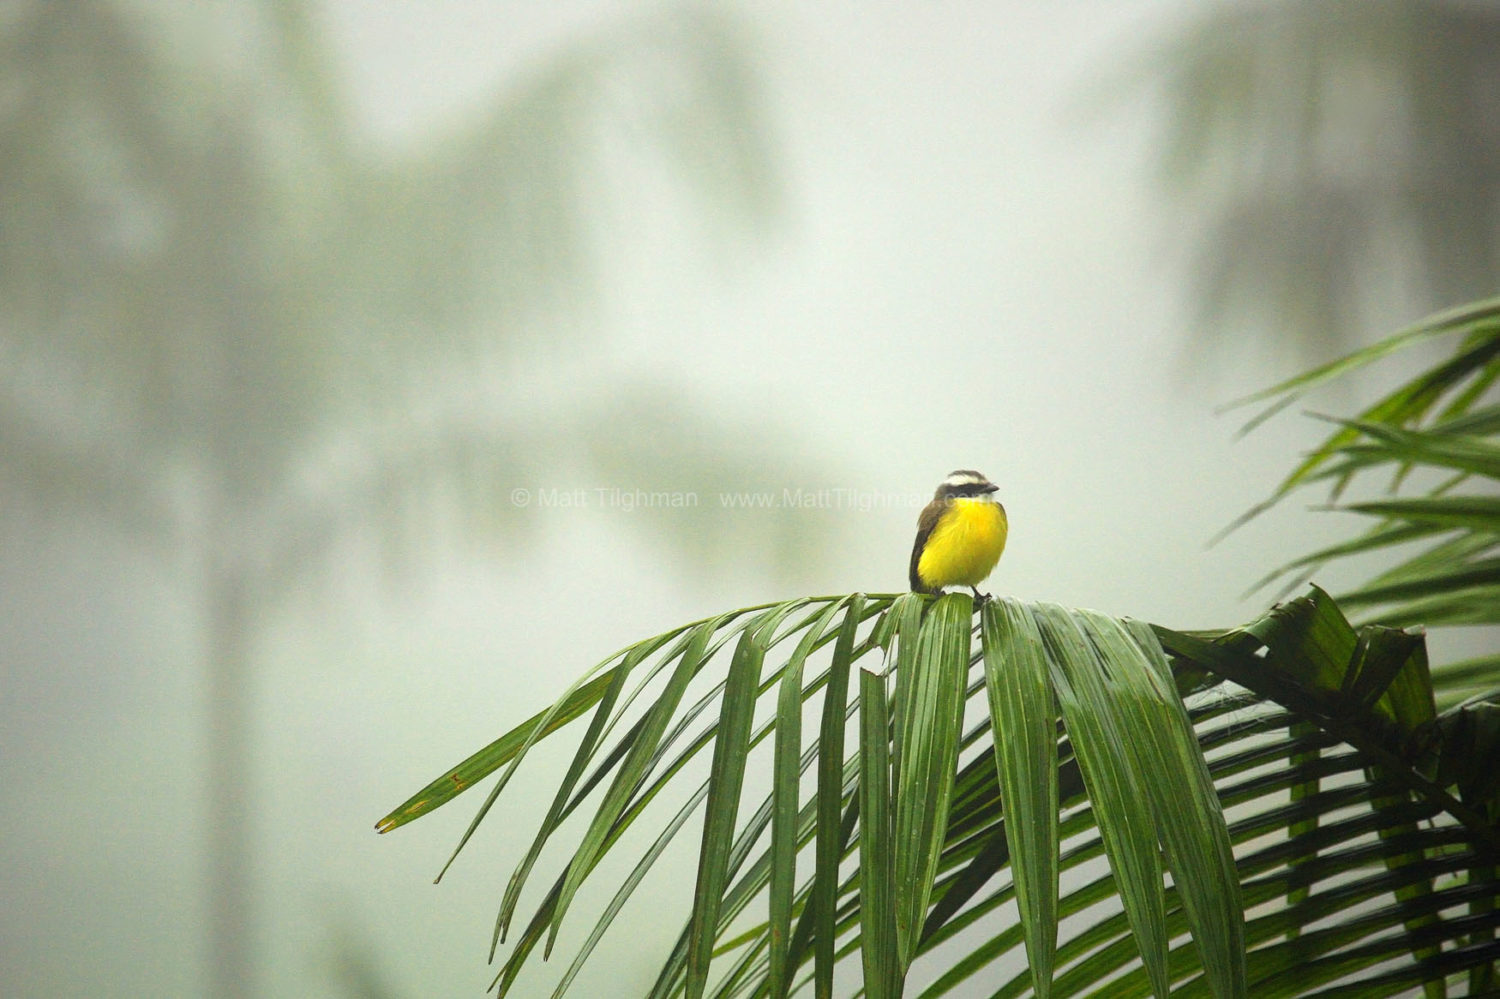 Fine art stock photograph of a beautiful tropical bird deep within the misty cloud forests of Costa Rica. These jungles are chock-full of flora and fauna.